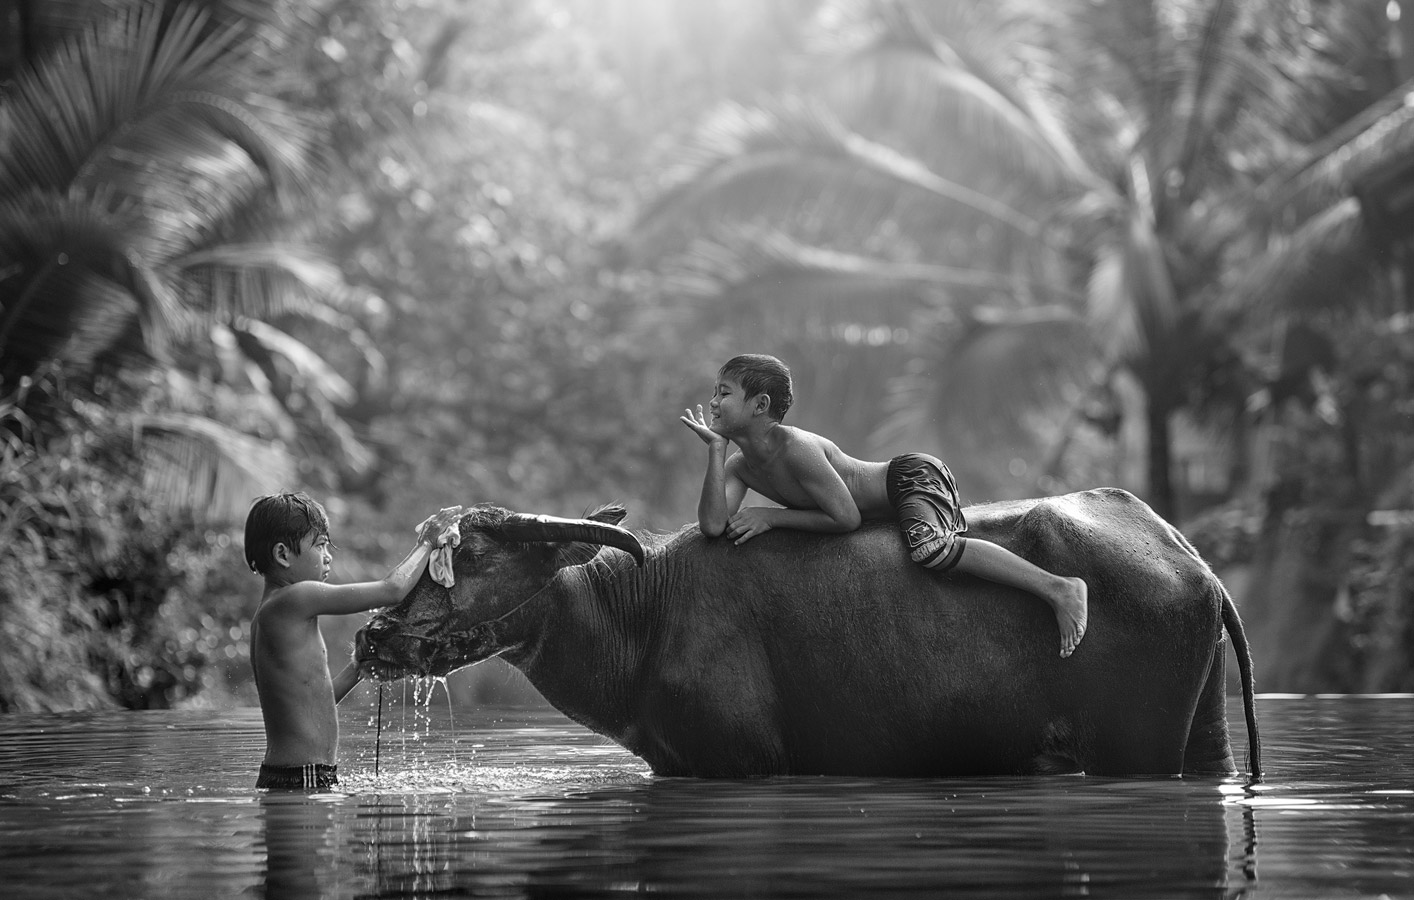 Buffalo Bathing, © Alexandrino Lei Airosa, Honorable Mention, Black & White Art Competition by Fusion Art